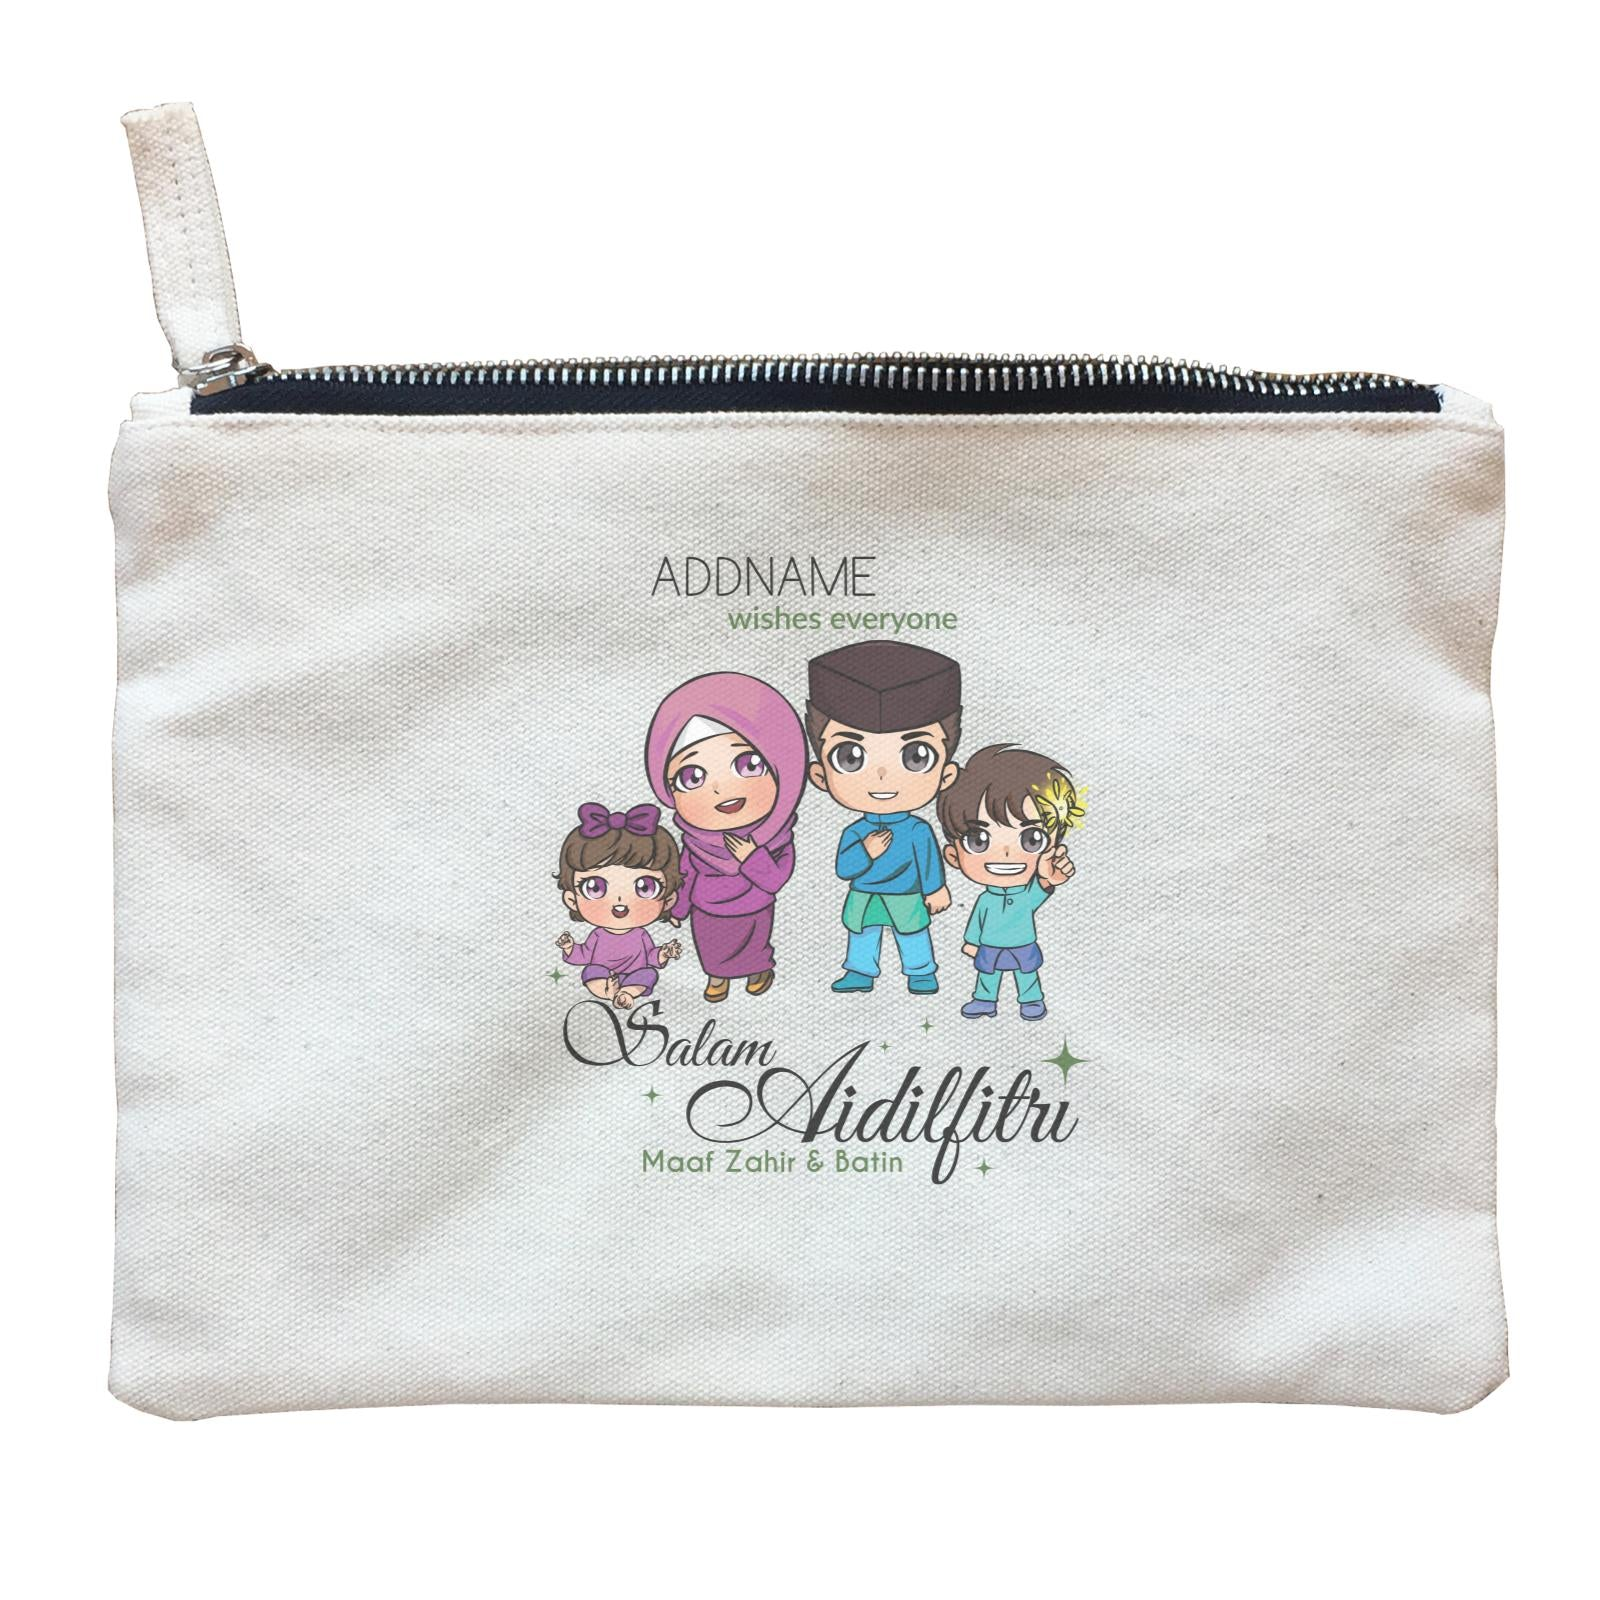 Raya Chibi Family Boy And Baby Girl Addname Wishes Everyone Salam Aidilfitri Maaf Zahir & Batin Zipper Pouch